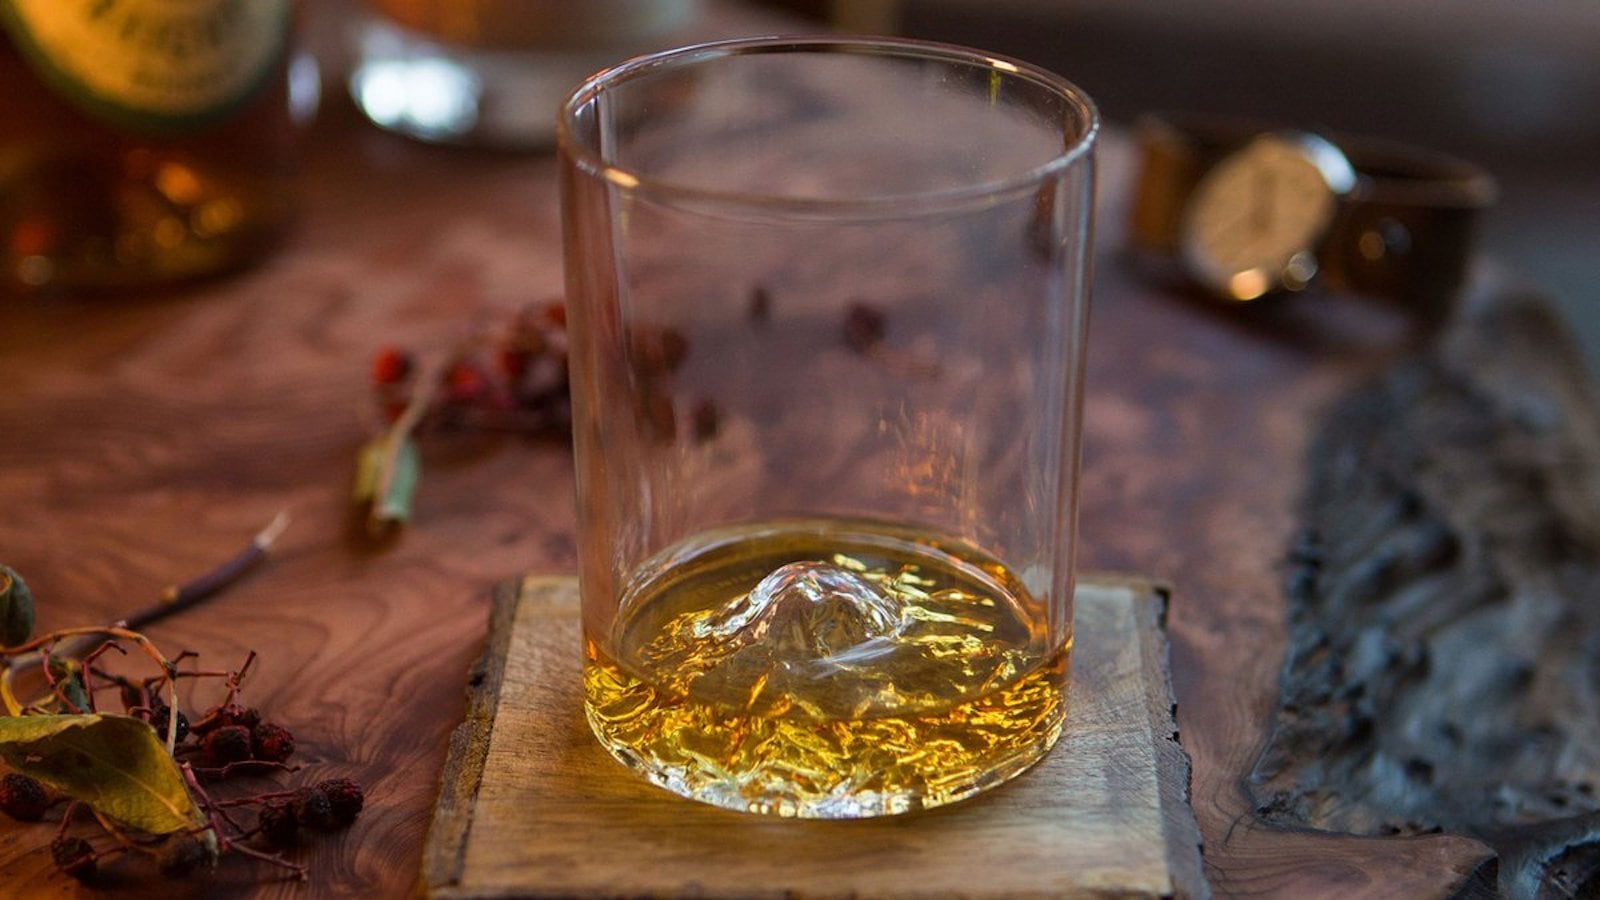 Whiskey Peaks American Mountains Rocks Glasses Set pays tribute to national treasures